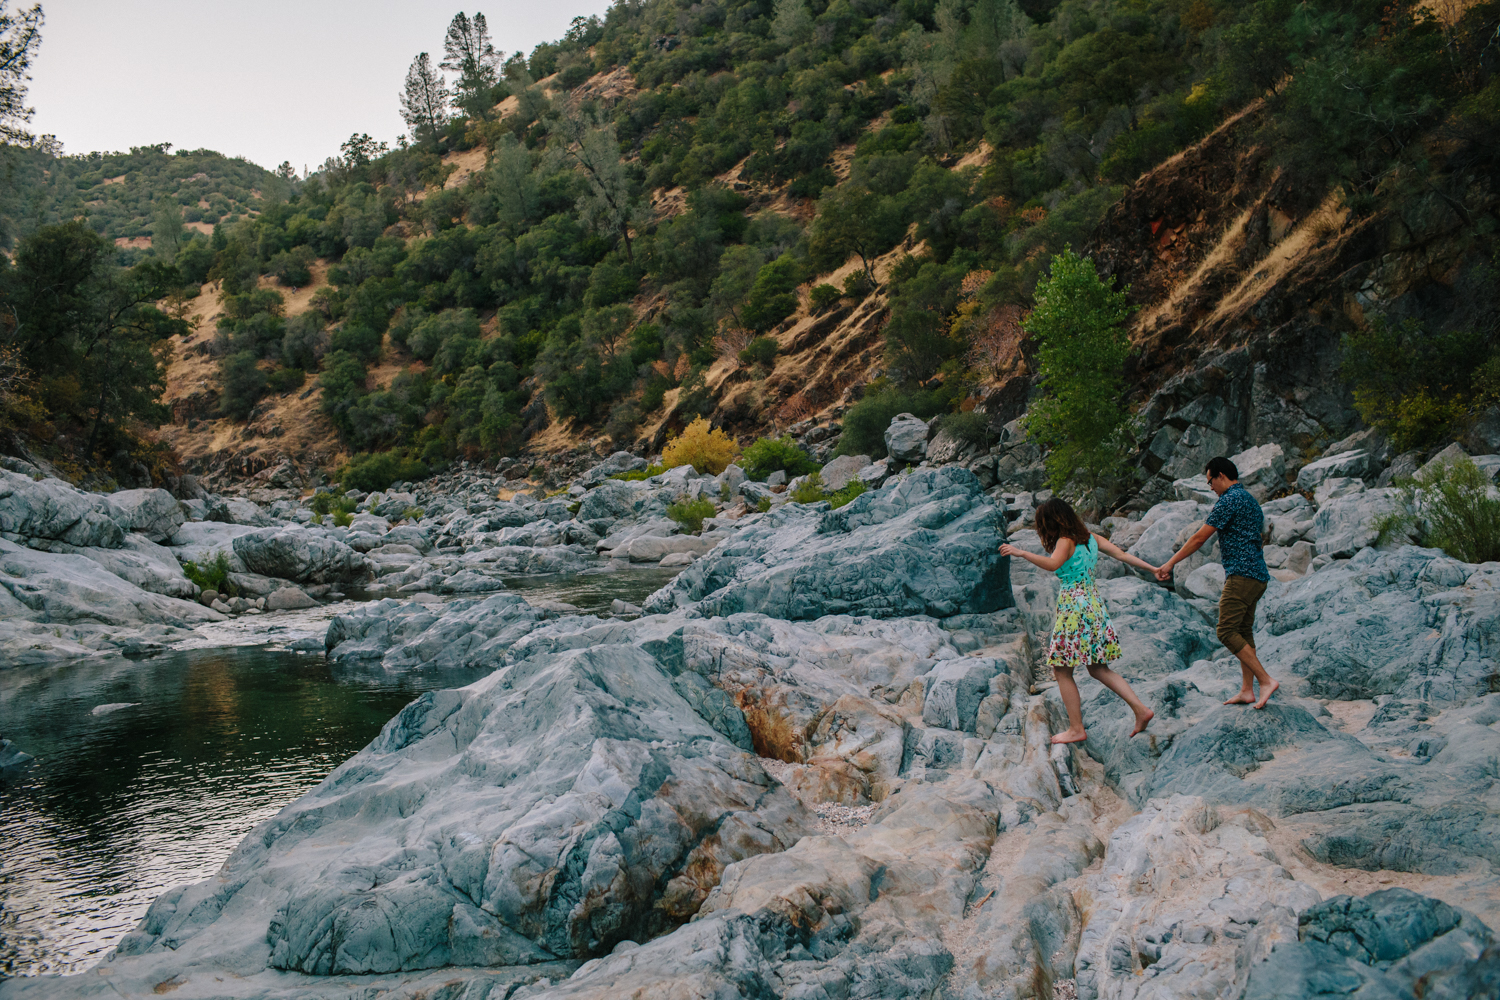 south yuba river engagement session penn valley grass nevada city